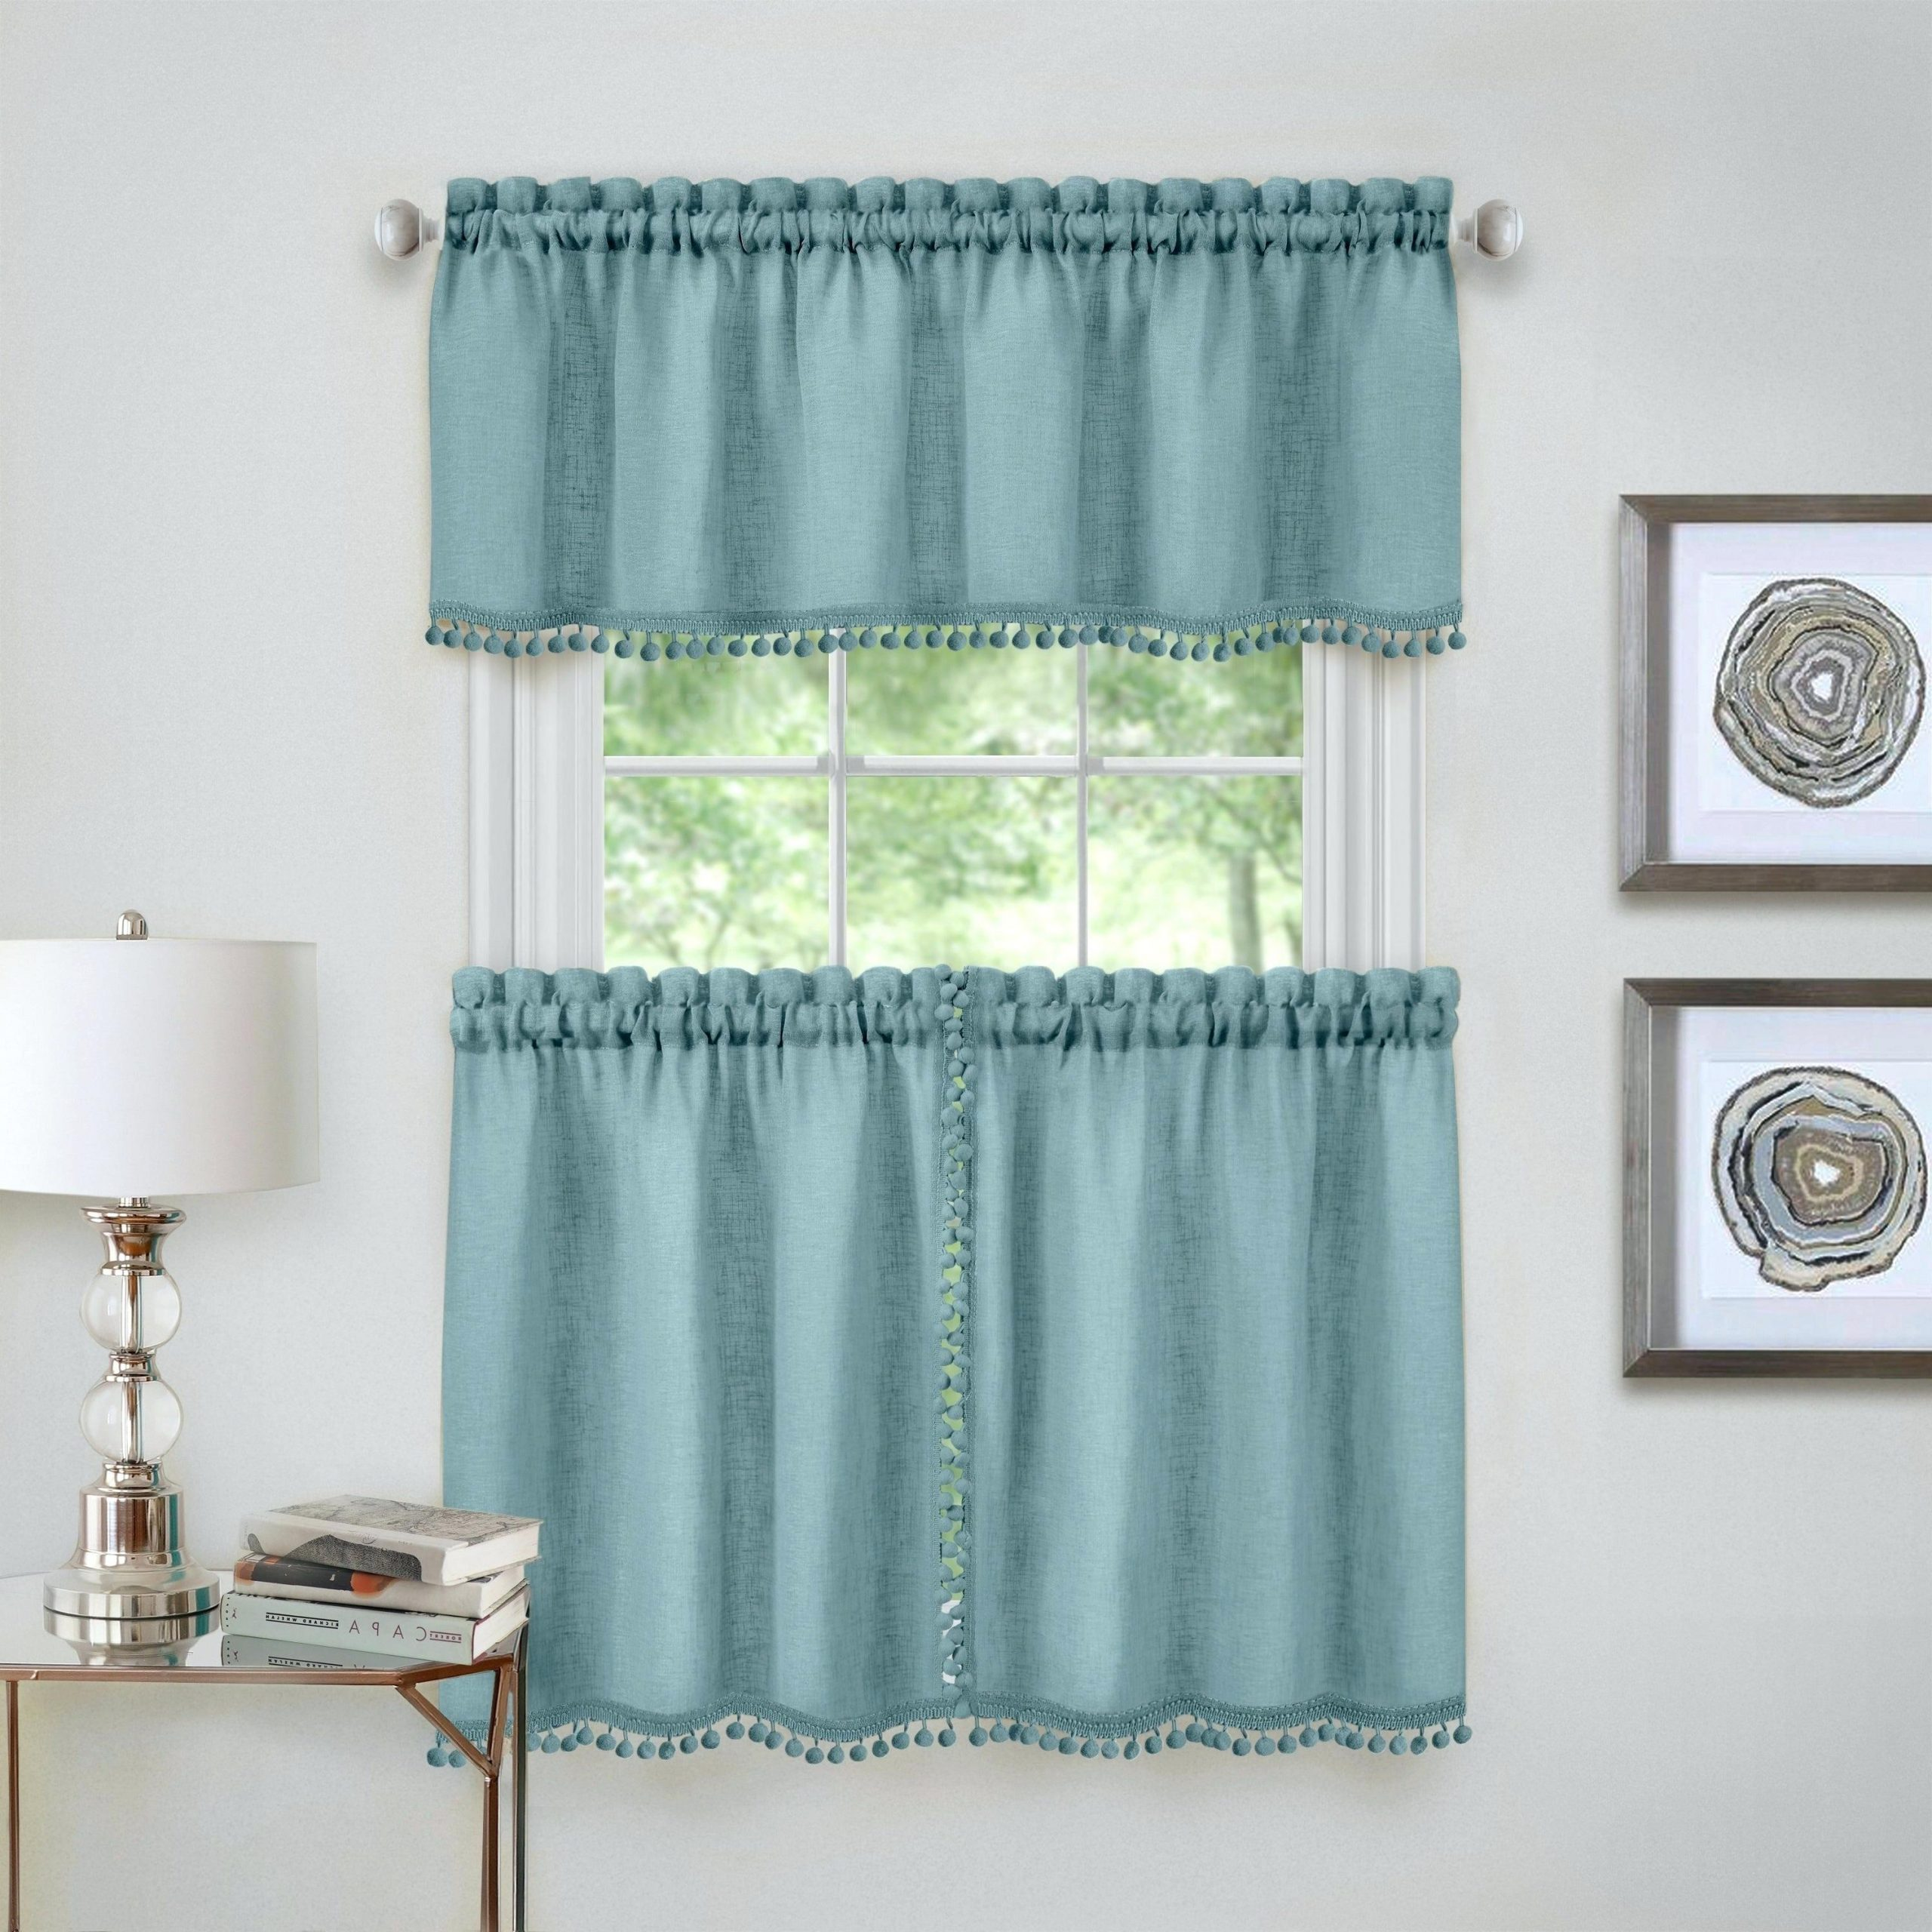 Curtain Sets With Valance – Onsaturn (View 4 of 20)